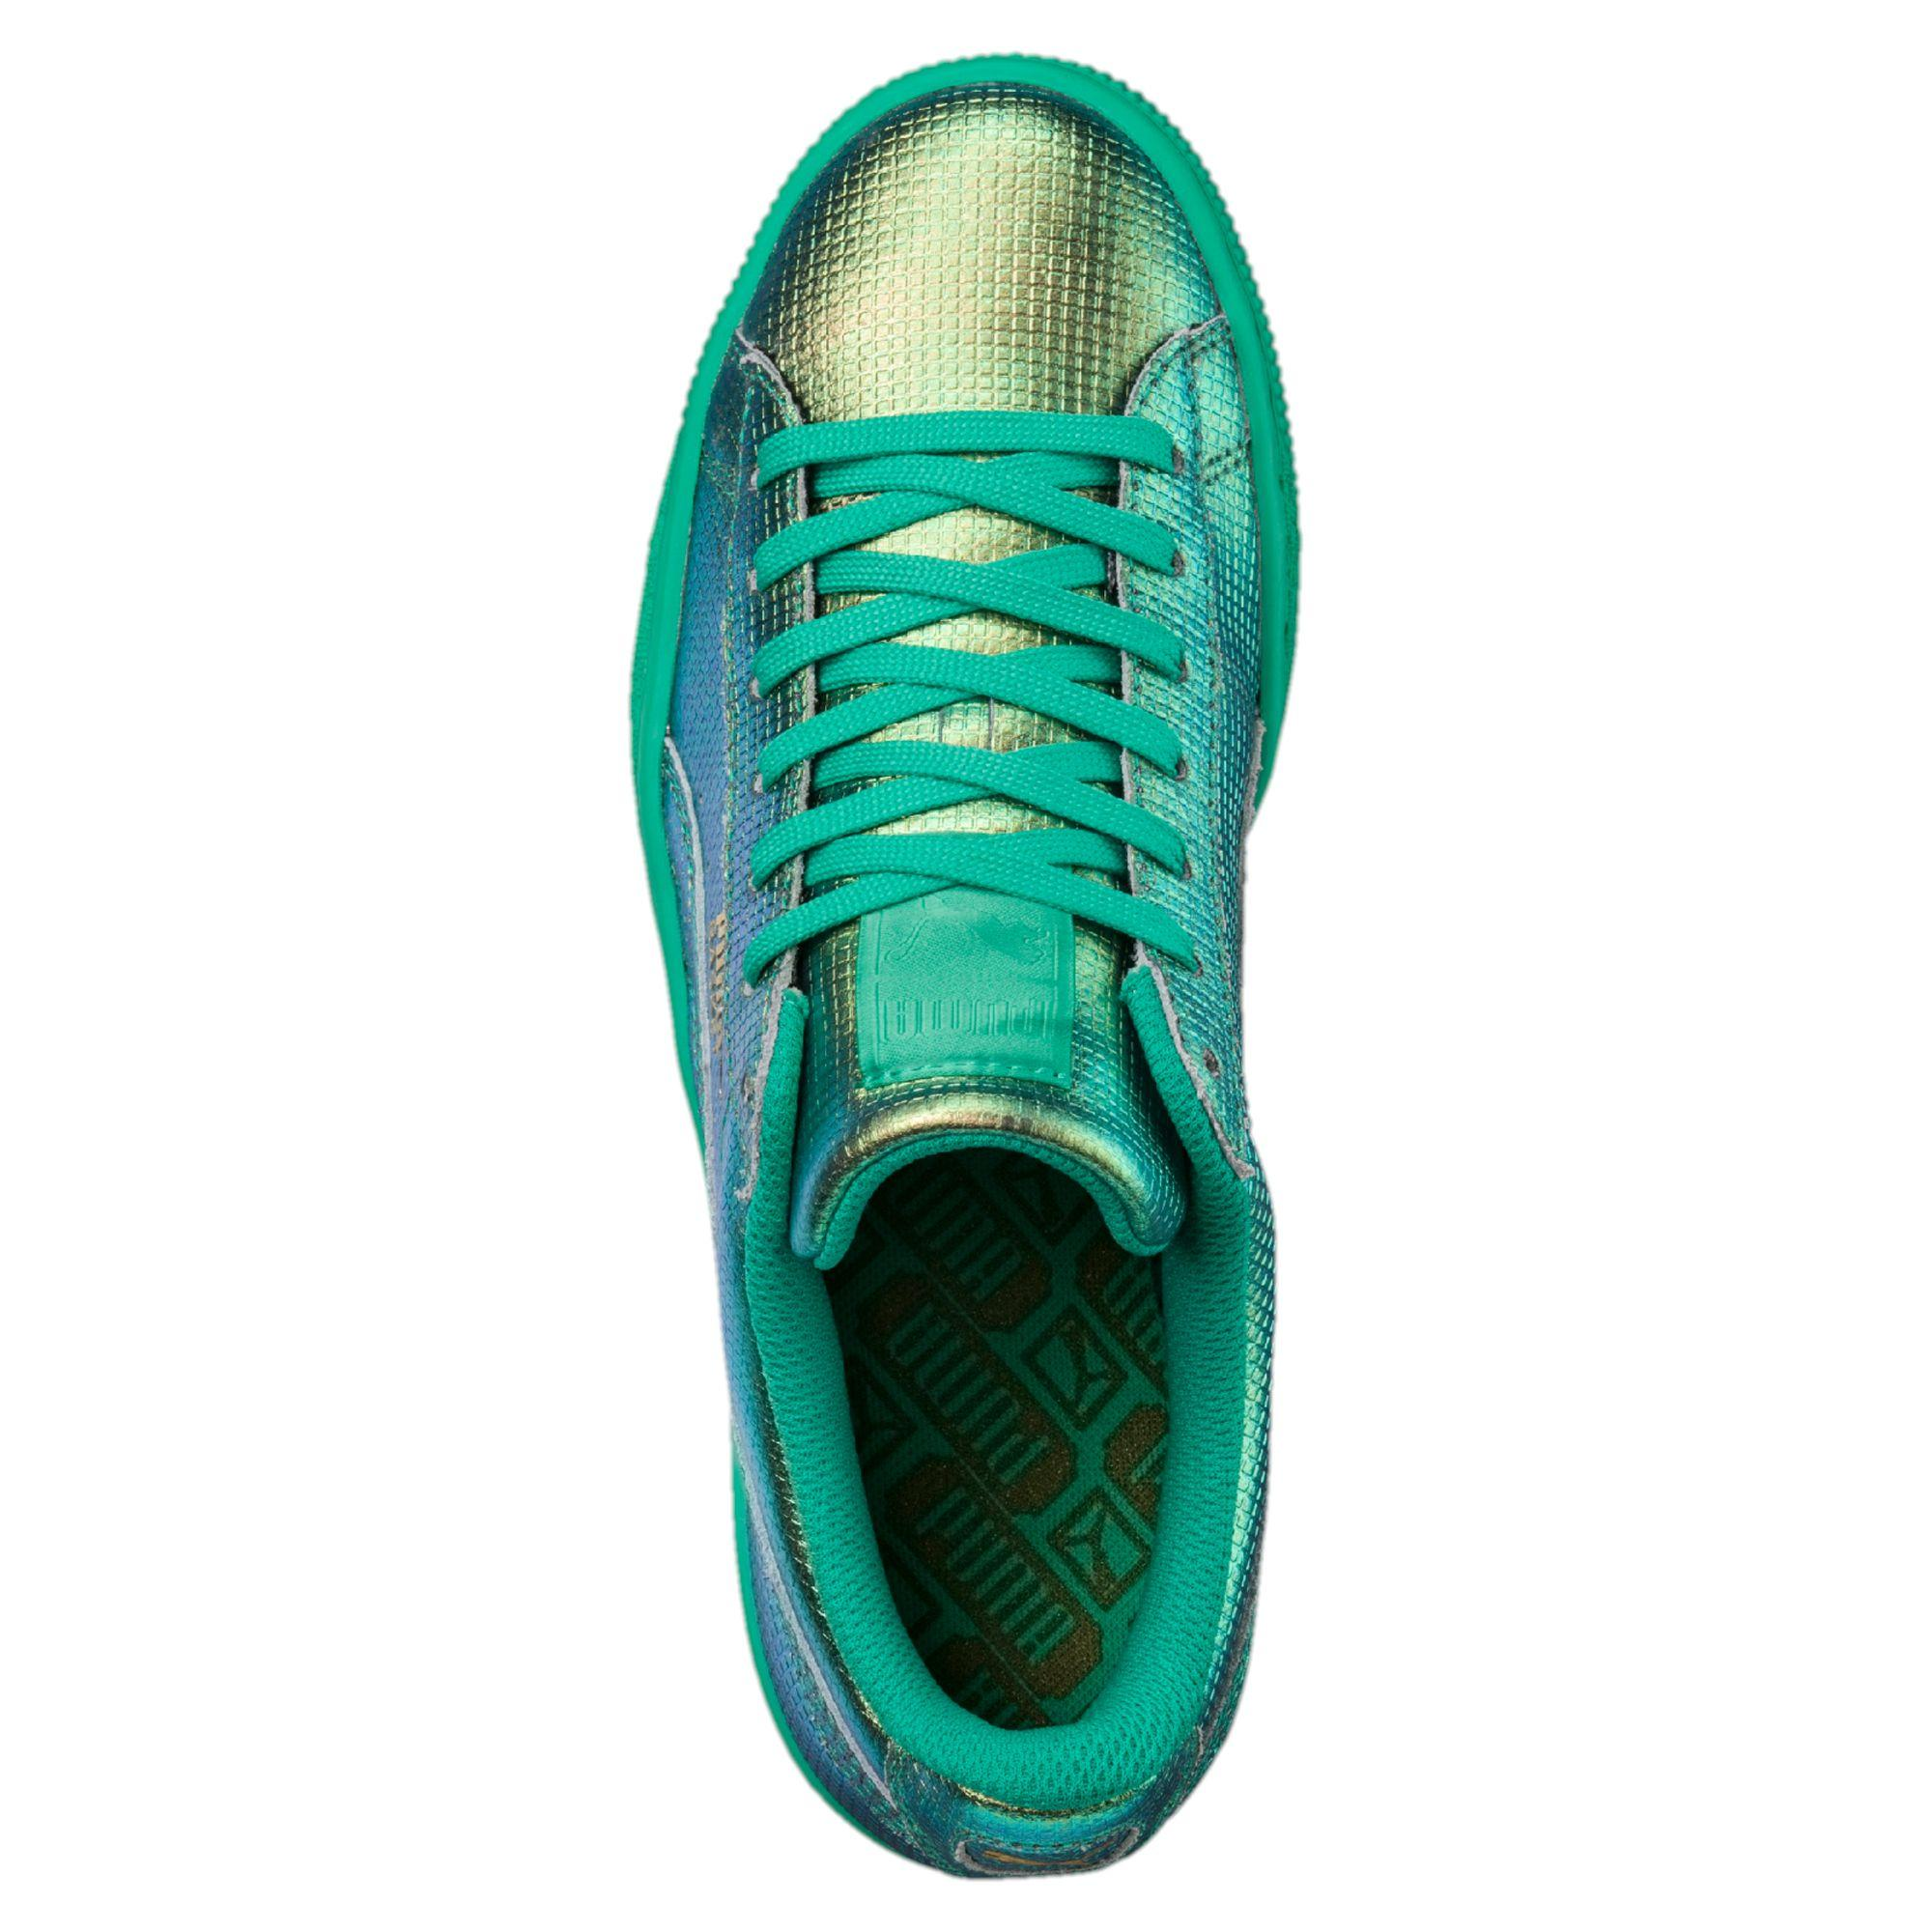 Lyst - PUMA Basket Holographic Women s Sneakers in Green 358e7776f